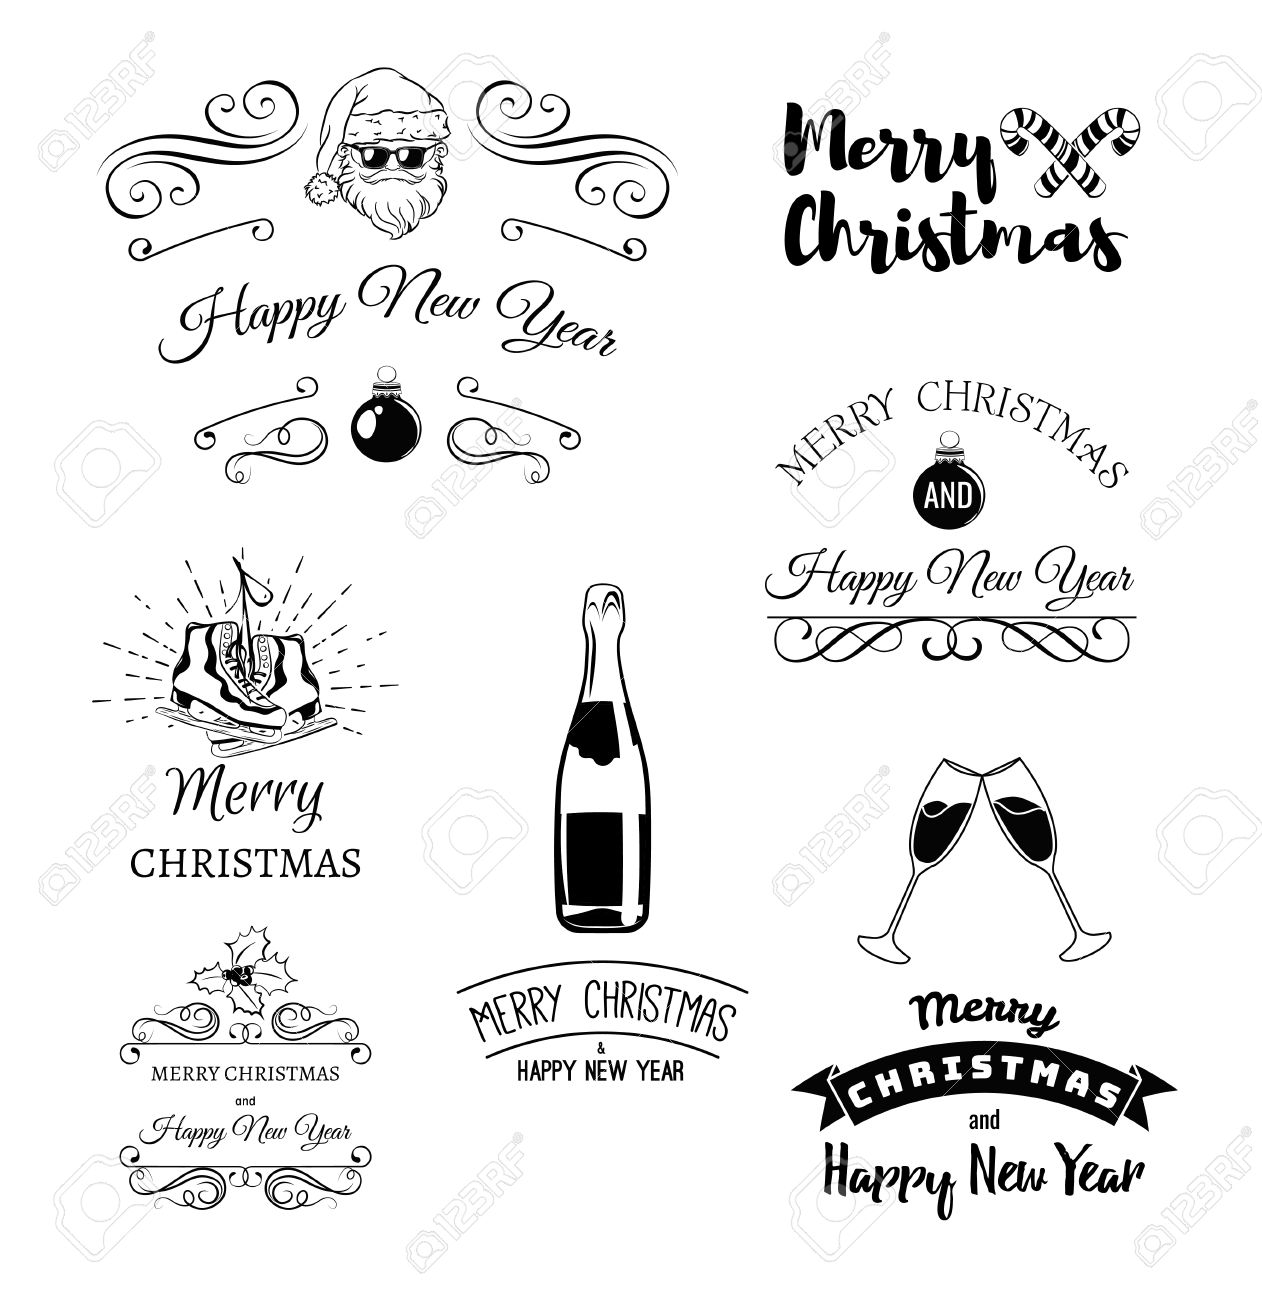 Vintage xmas merry christmas and happy new year greeting card merry christmas and happy new year greeting card set glass champagne cool santa claus snowman clink glasses bottle champagne m4hsunfo